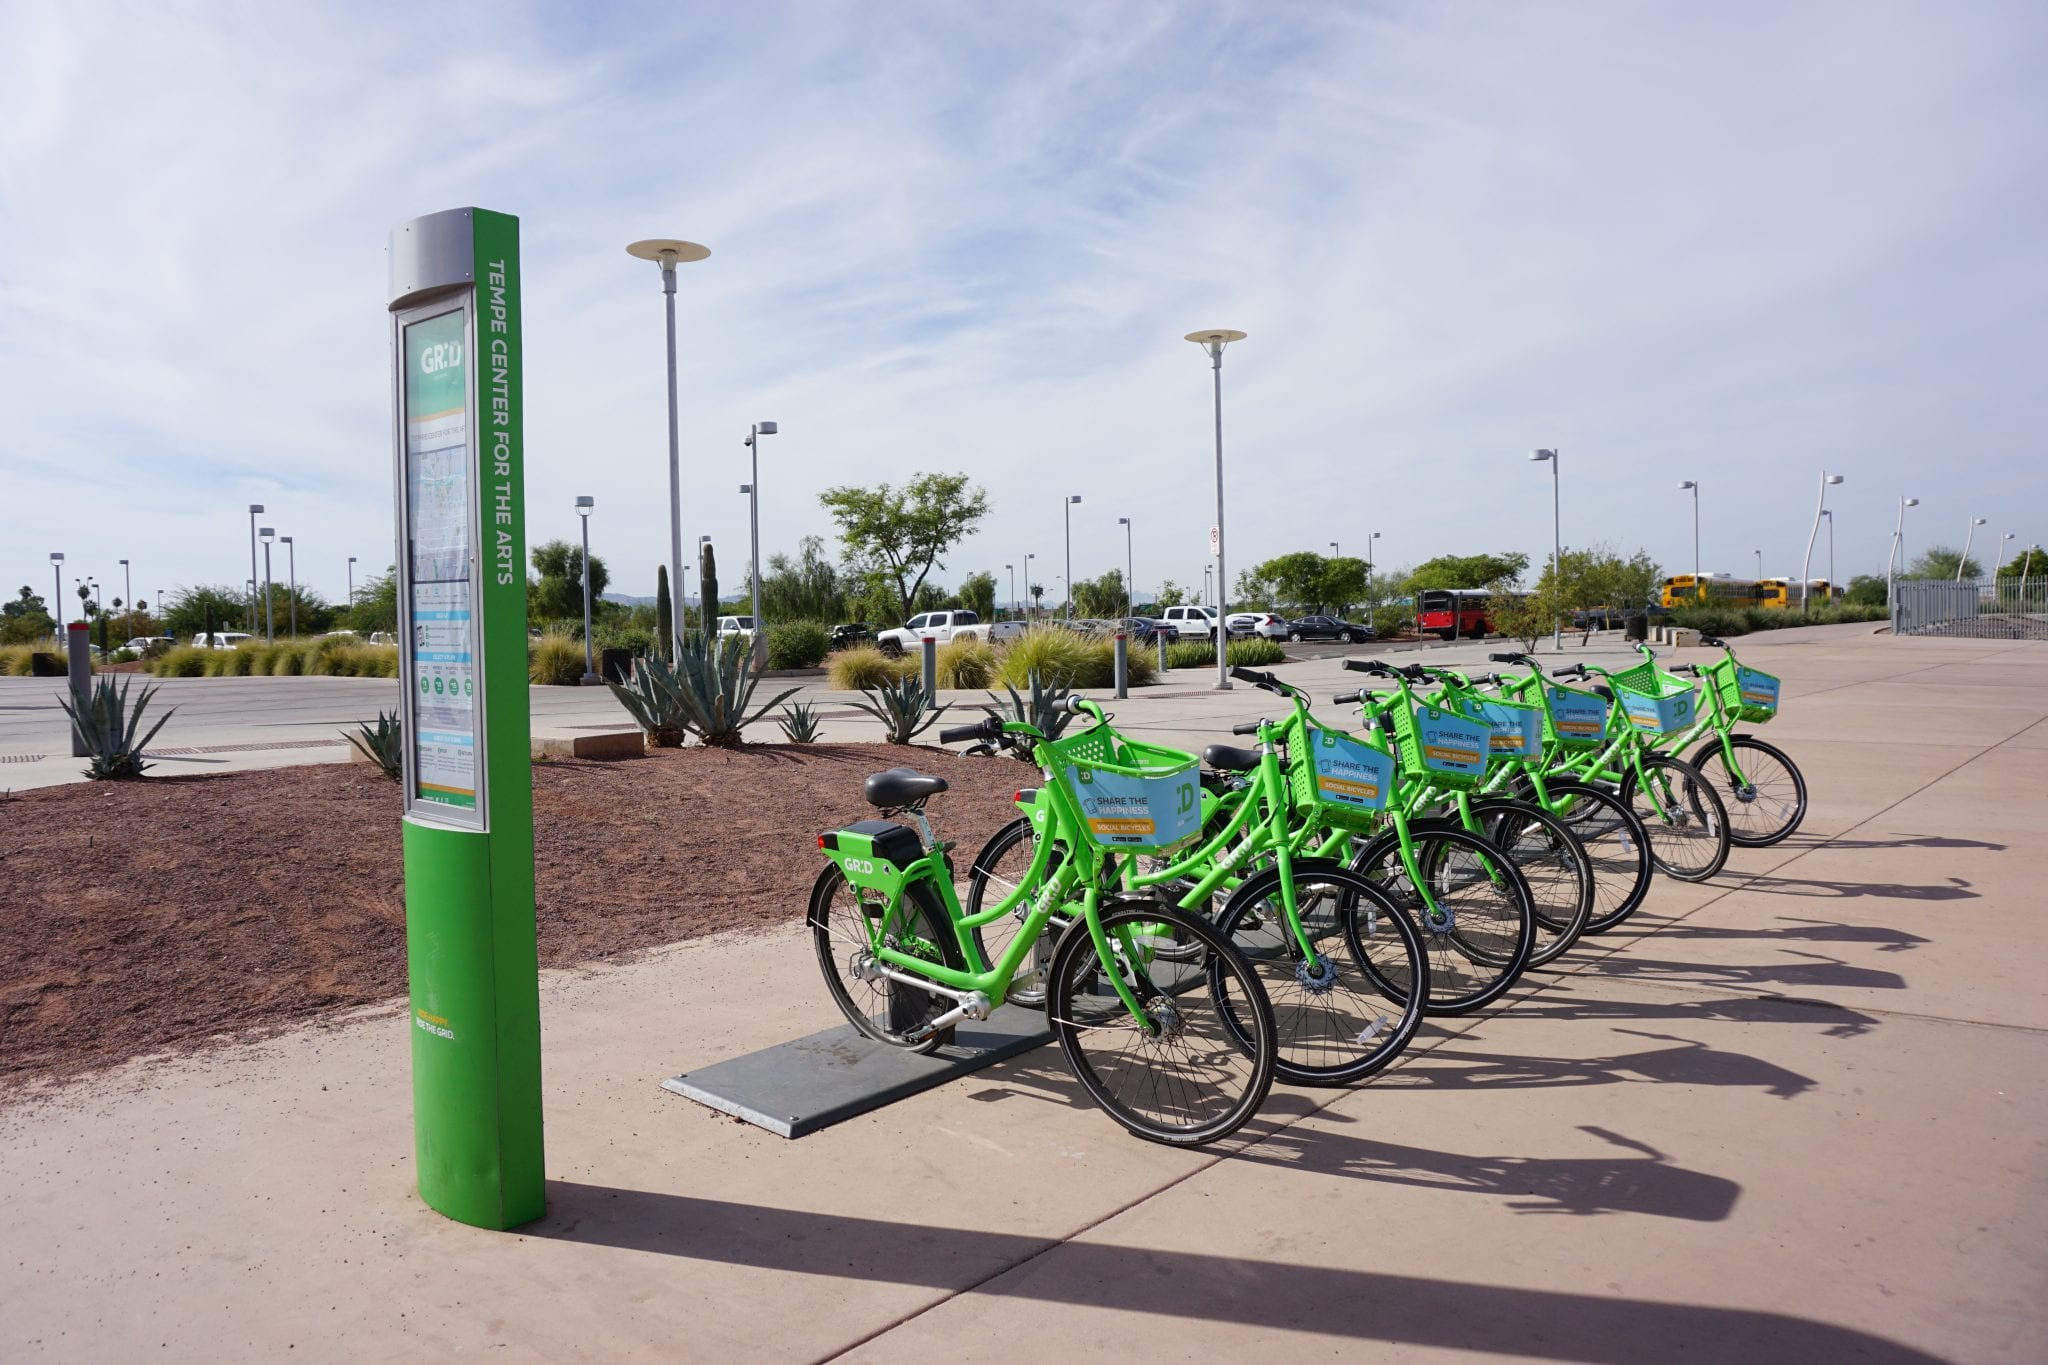 AD- It's easy to get around Tempe with kids. Hop on a bike, grab the metro, or an uber. Car rental is another great option. Check out our Ultimate Guide to visiting Tempe with Kids by clicking through to the article.